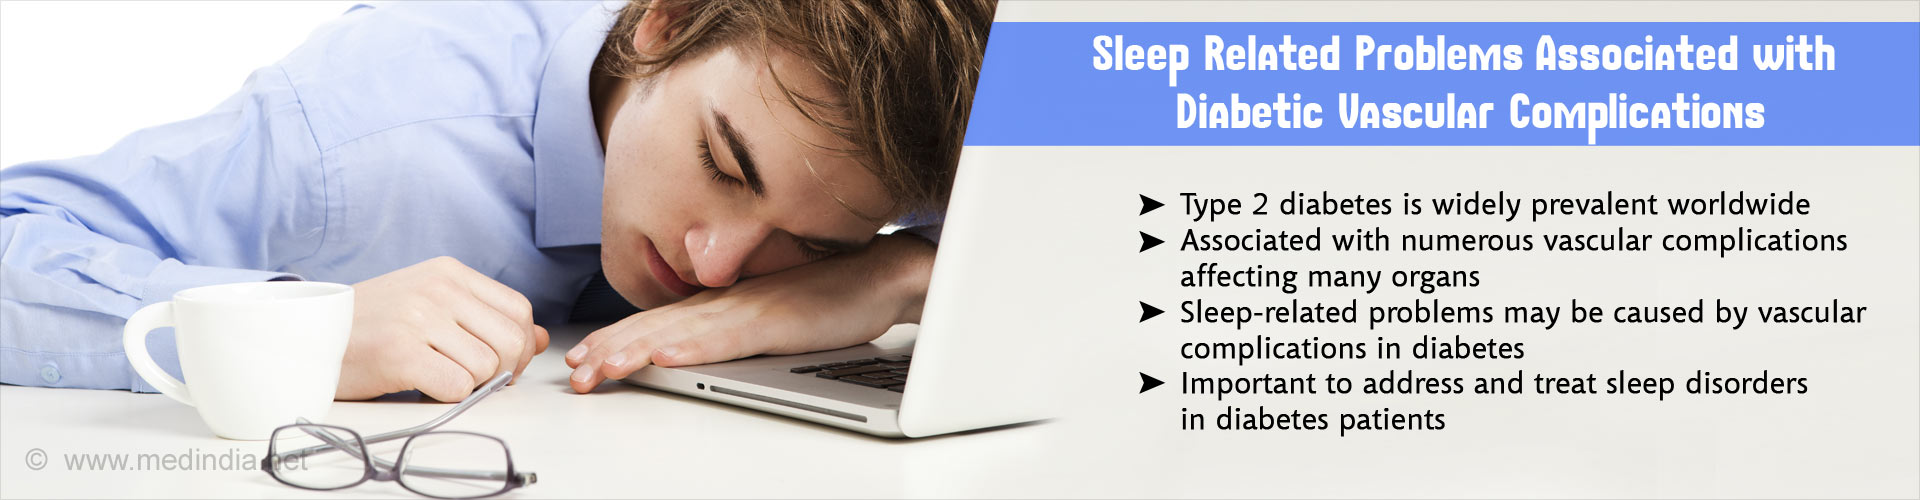 Vascular Complications in Diabetes Could Cause Sleep Problems